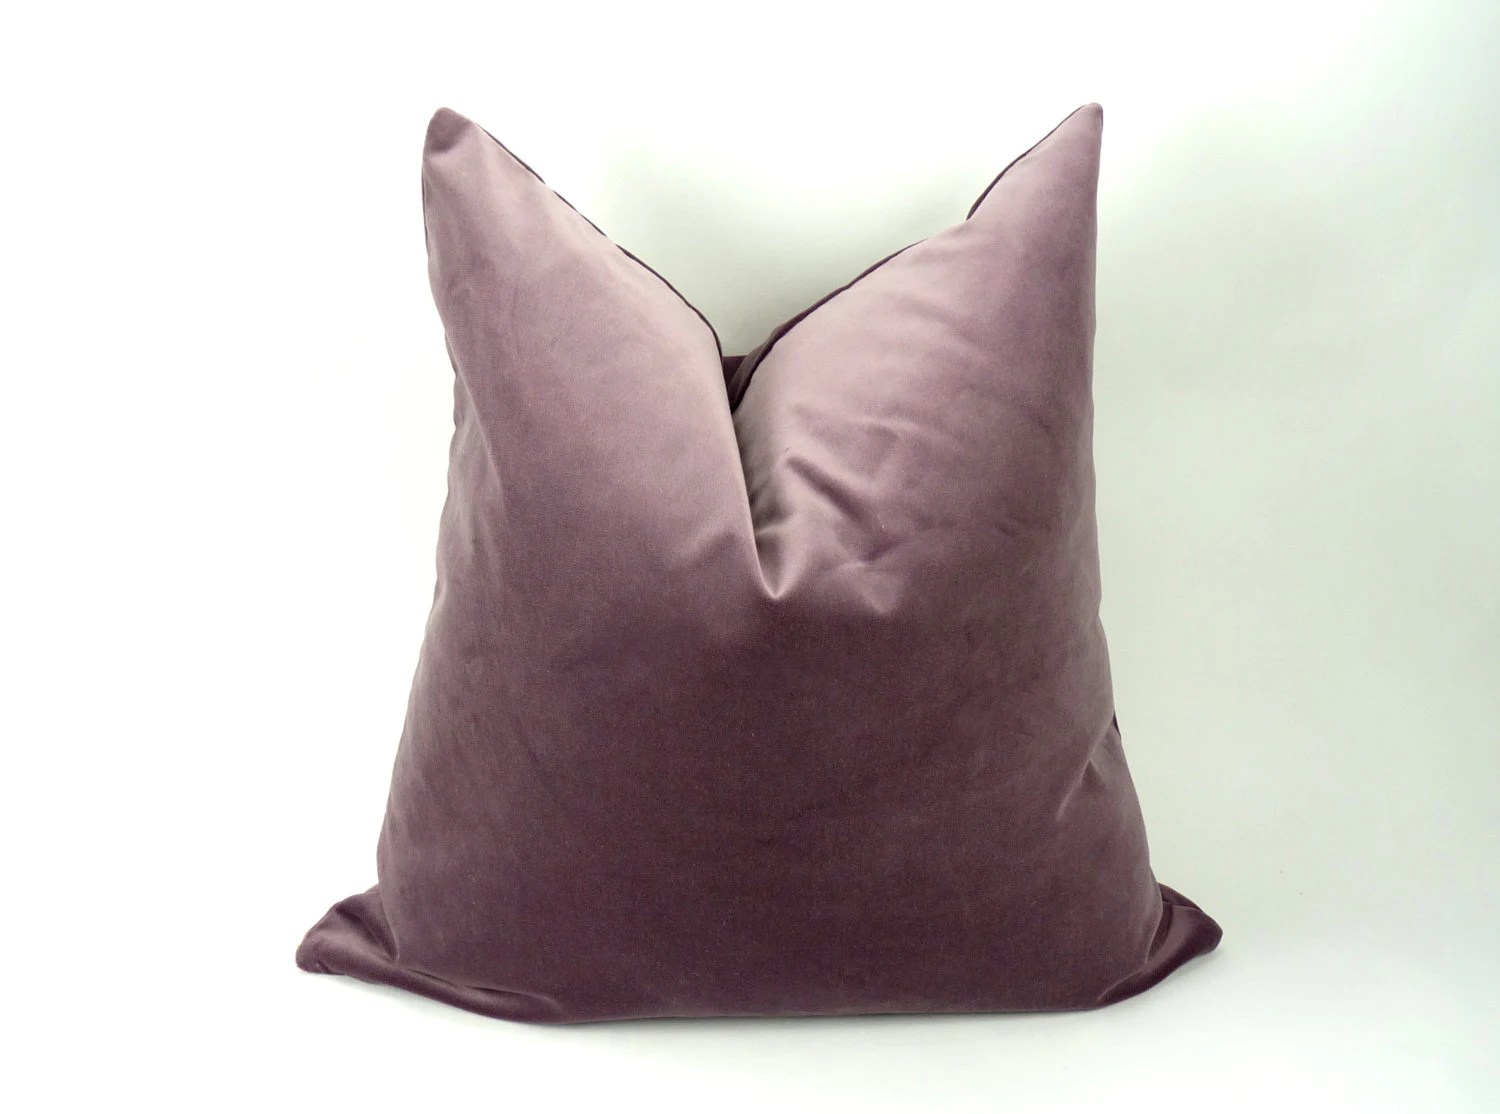 velvet 5in1 air sofa bed reviews spencer dwell mauve pillow cover cushion case